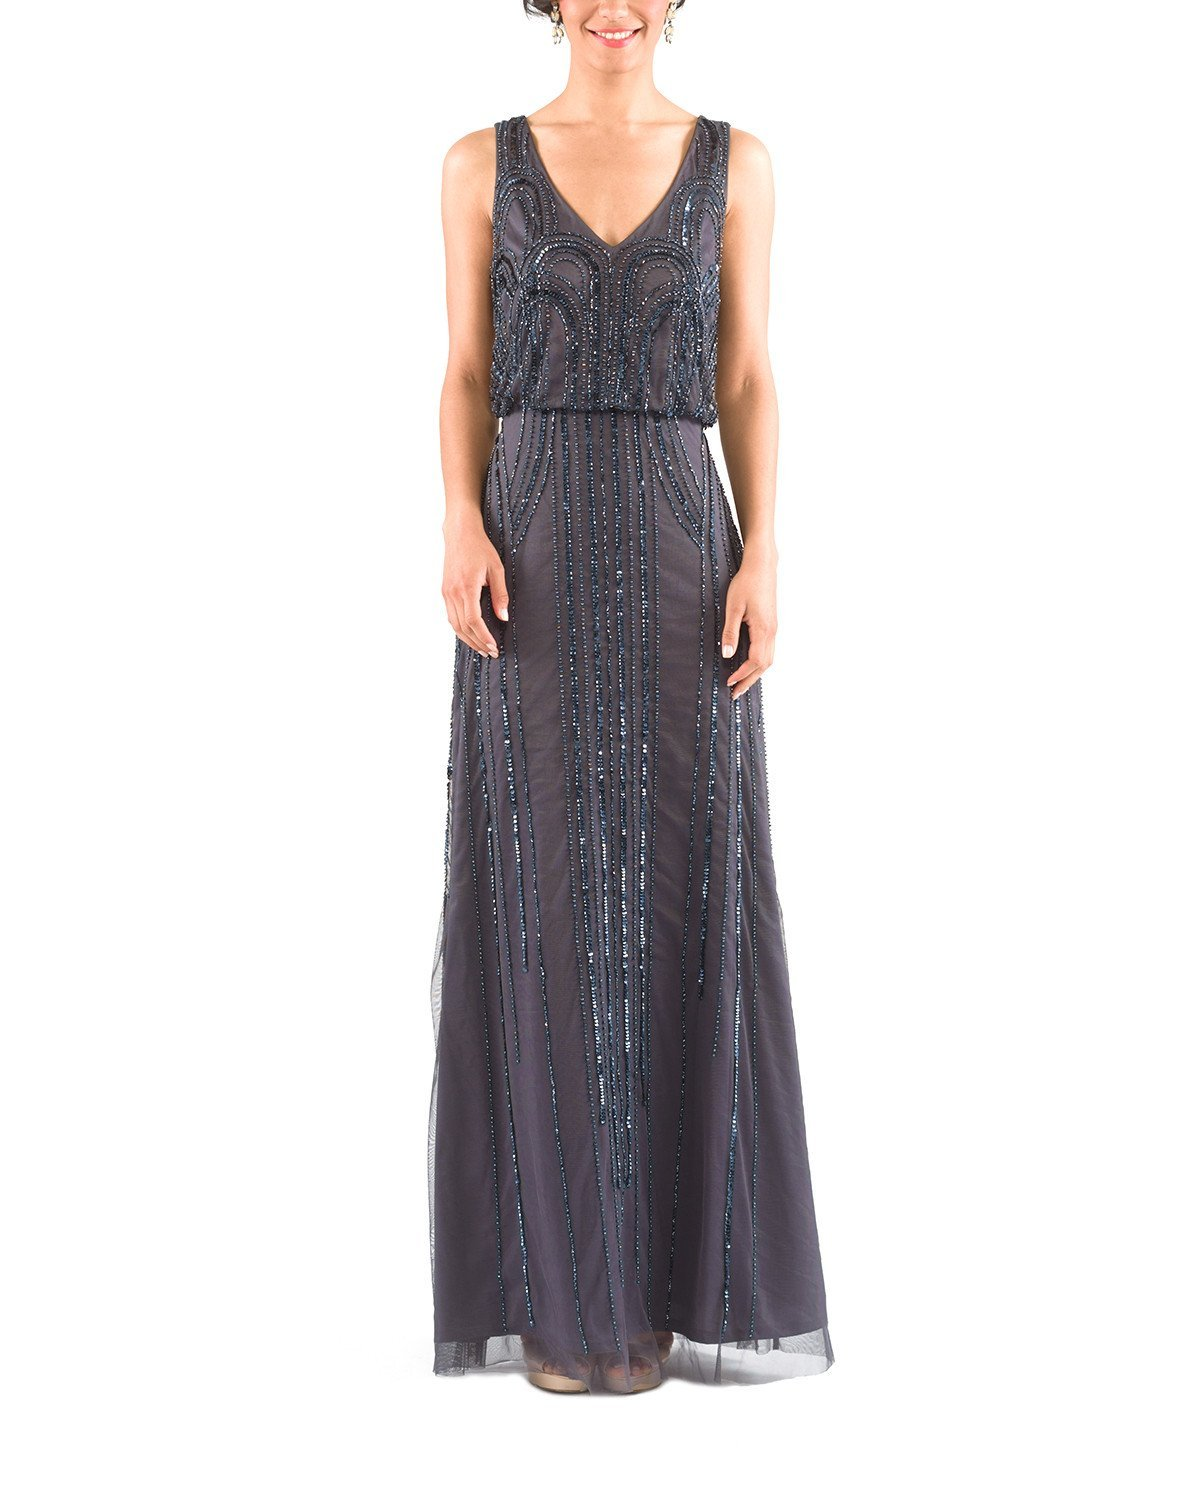 Adrianna Papell Sleeveless Blouson Gown in Gunmetal Bridesmaid Dress ...